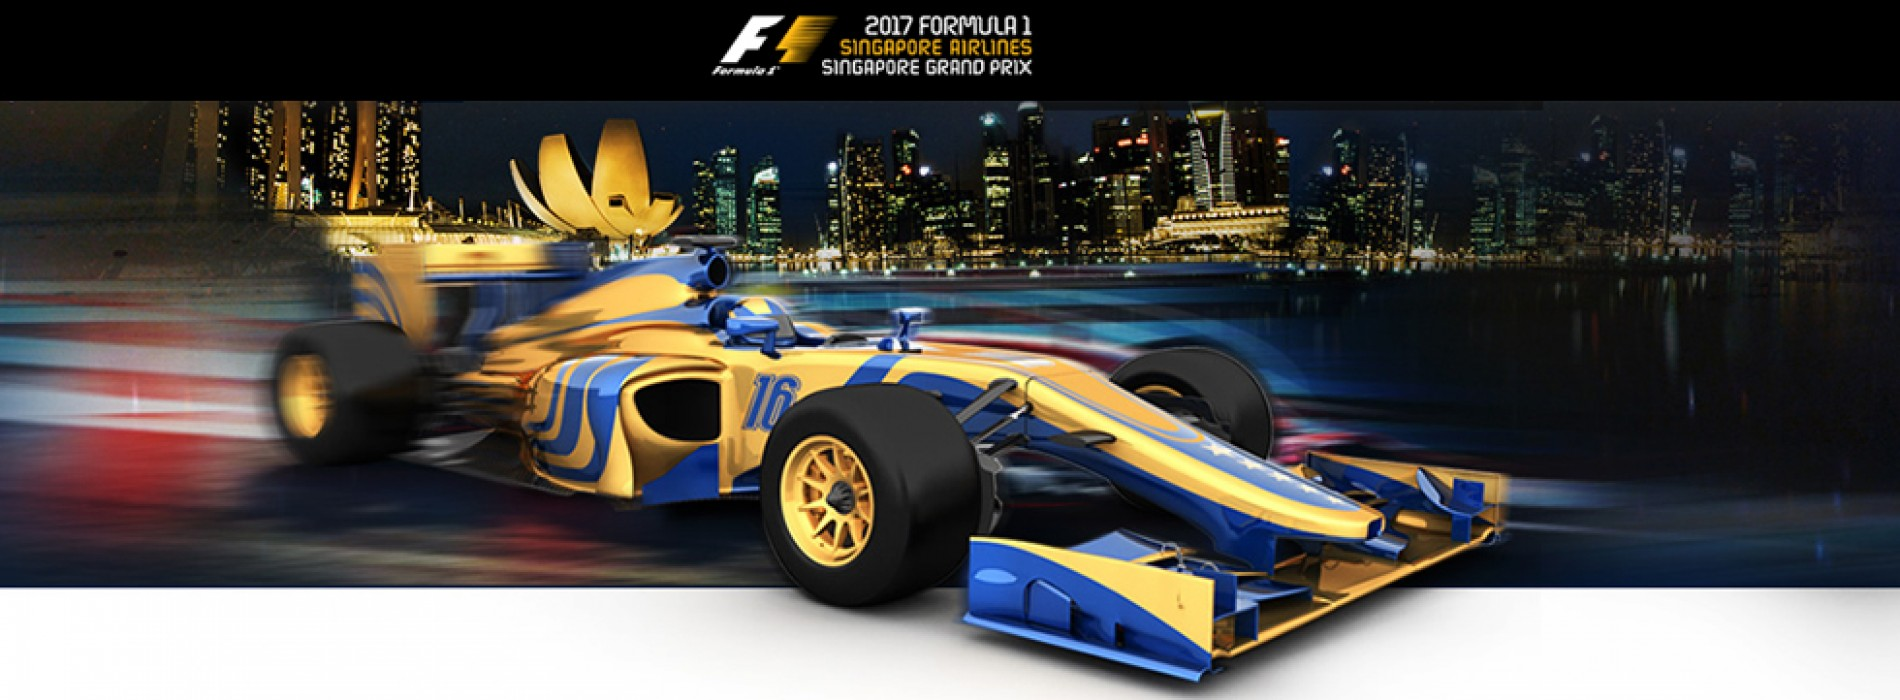 Indian fans gear up for Singapore Grand Prix